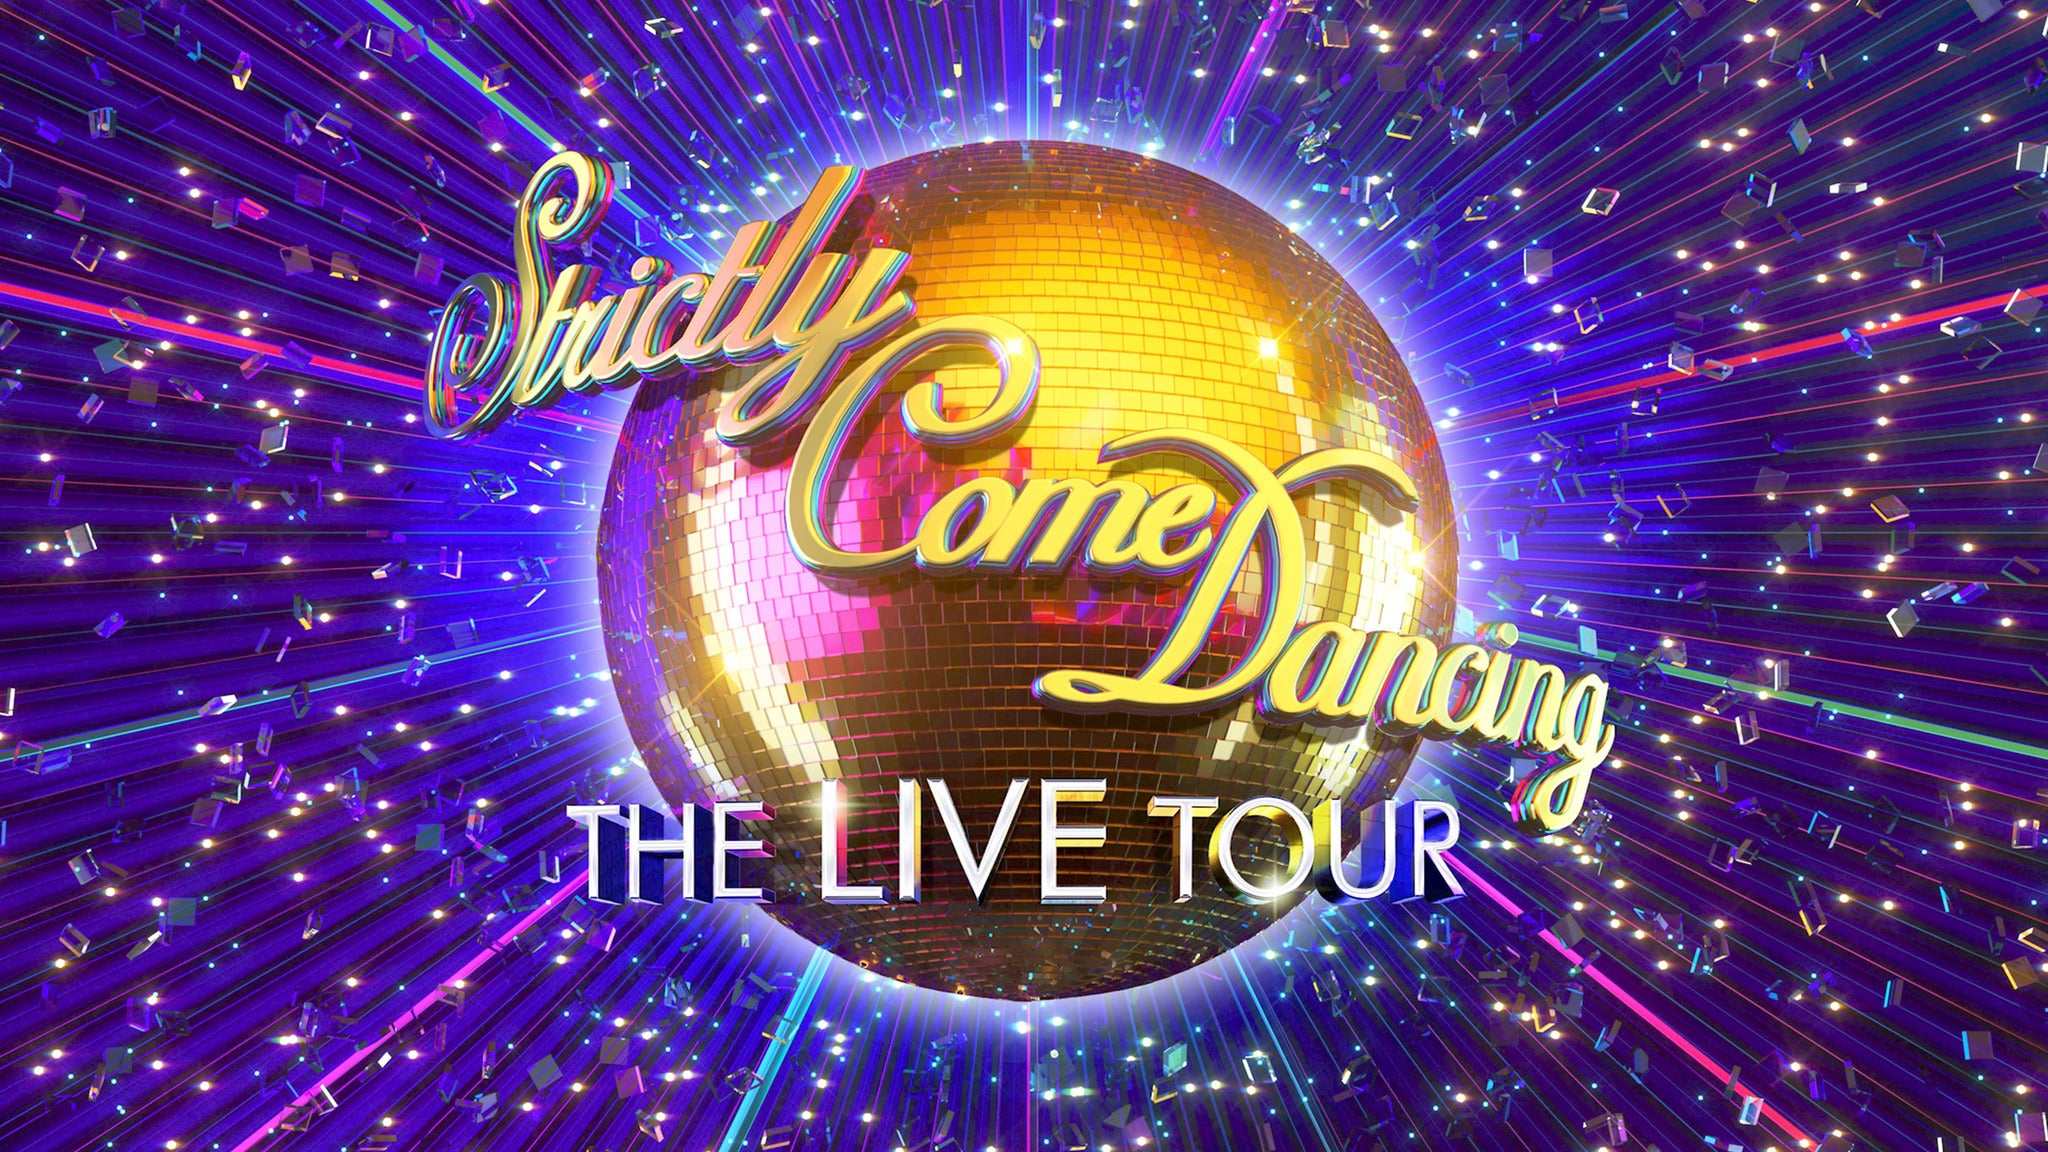 Strictly Come Dancing - the Live Tour 3Arena Seating Plan